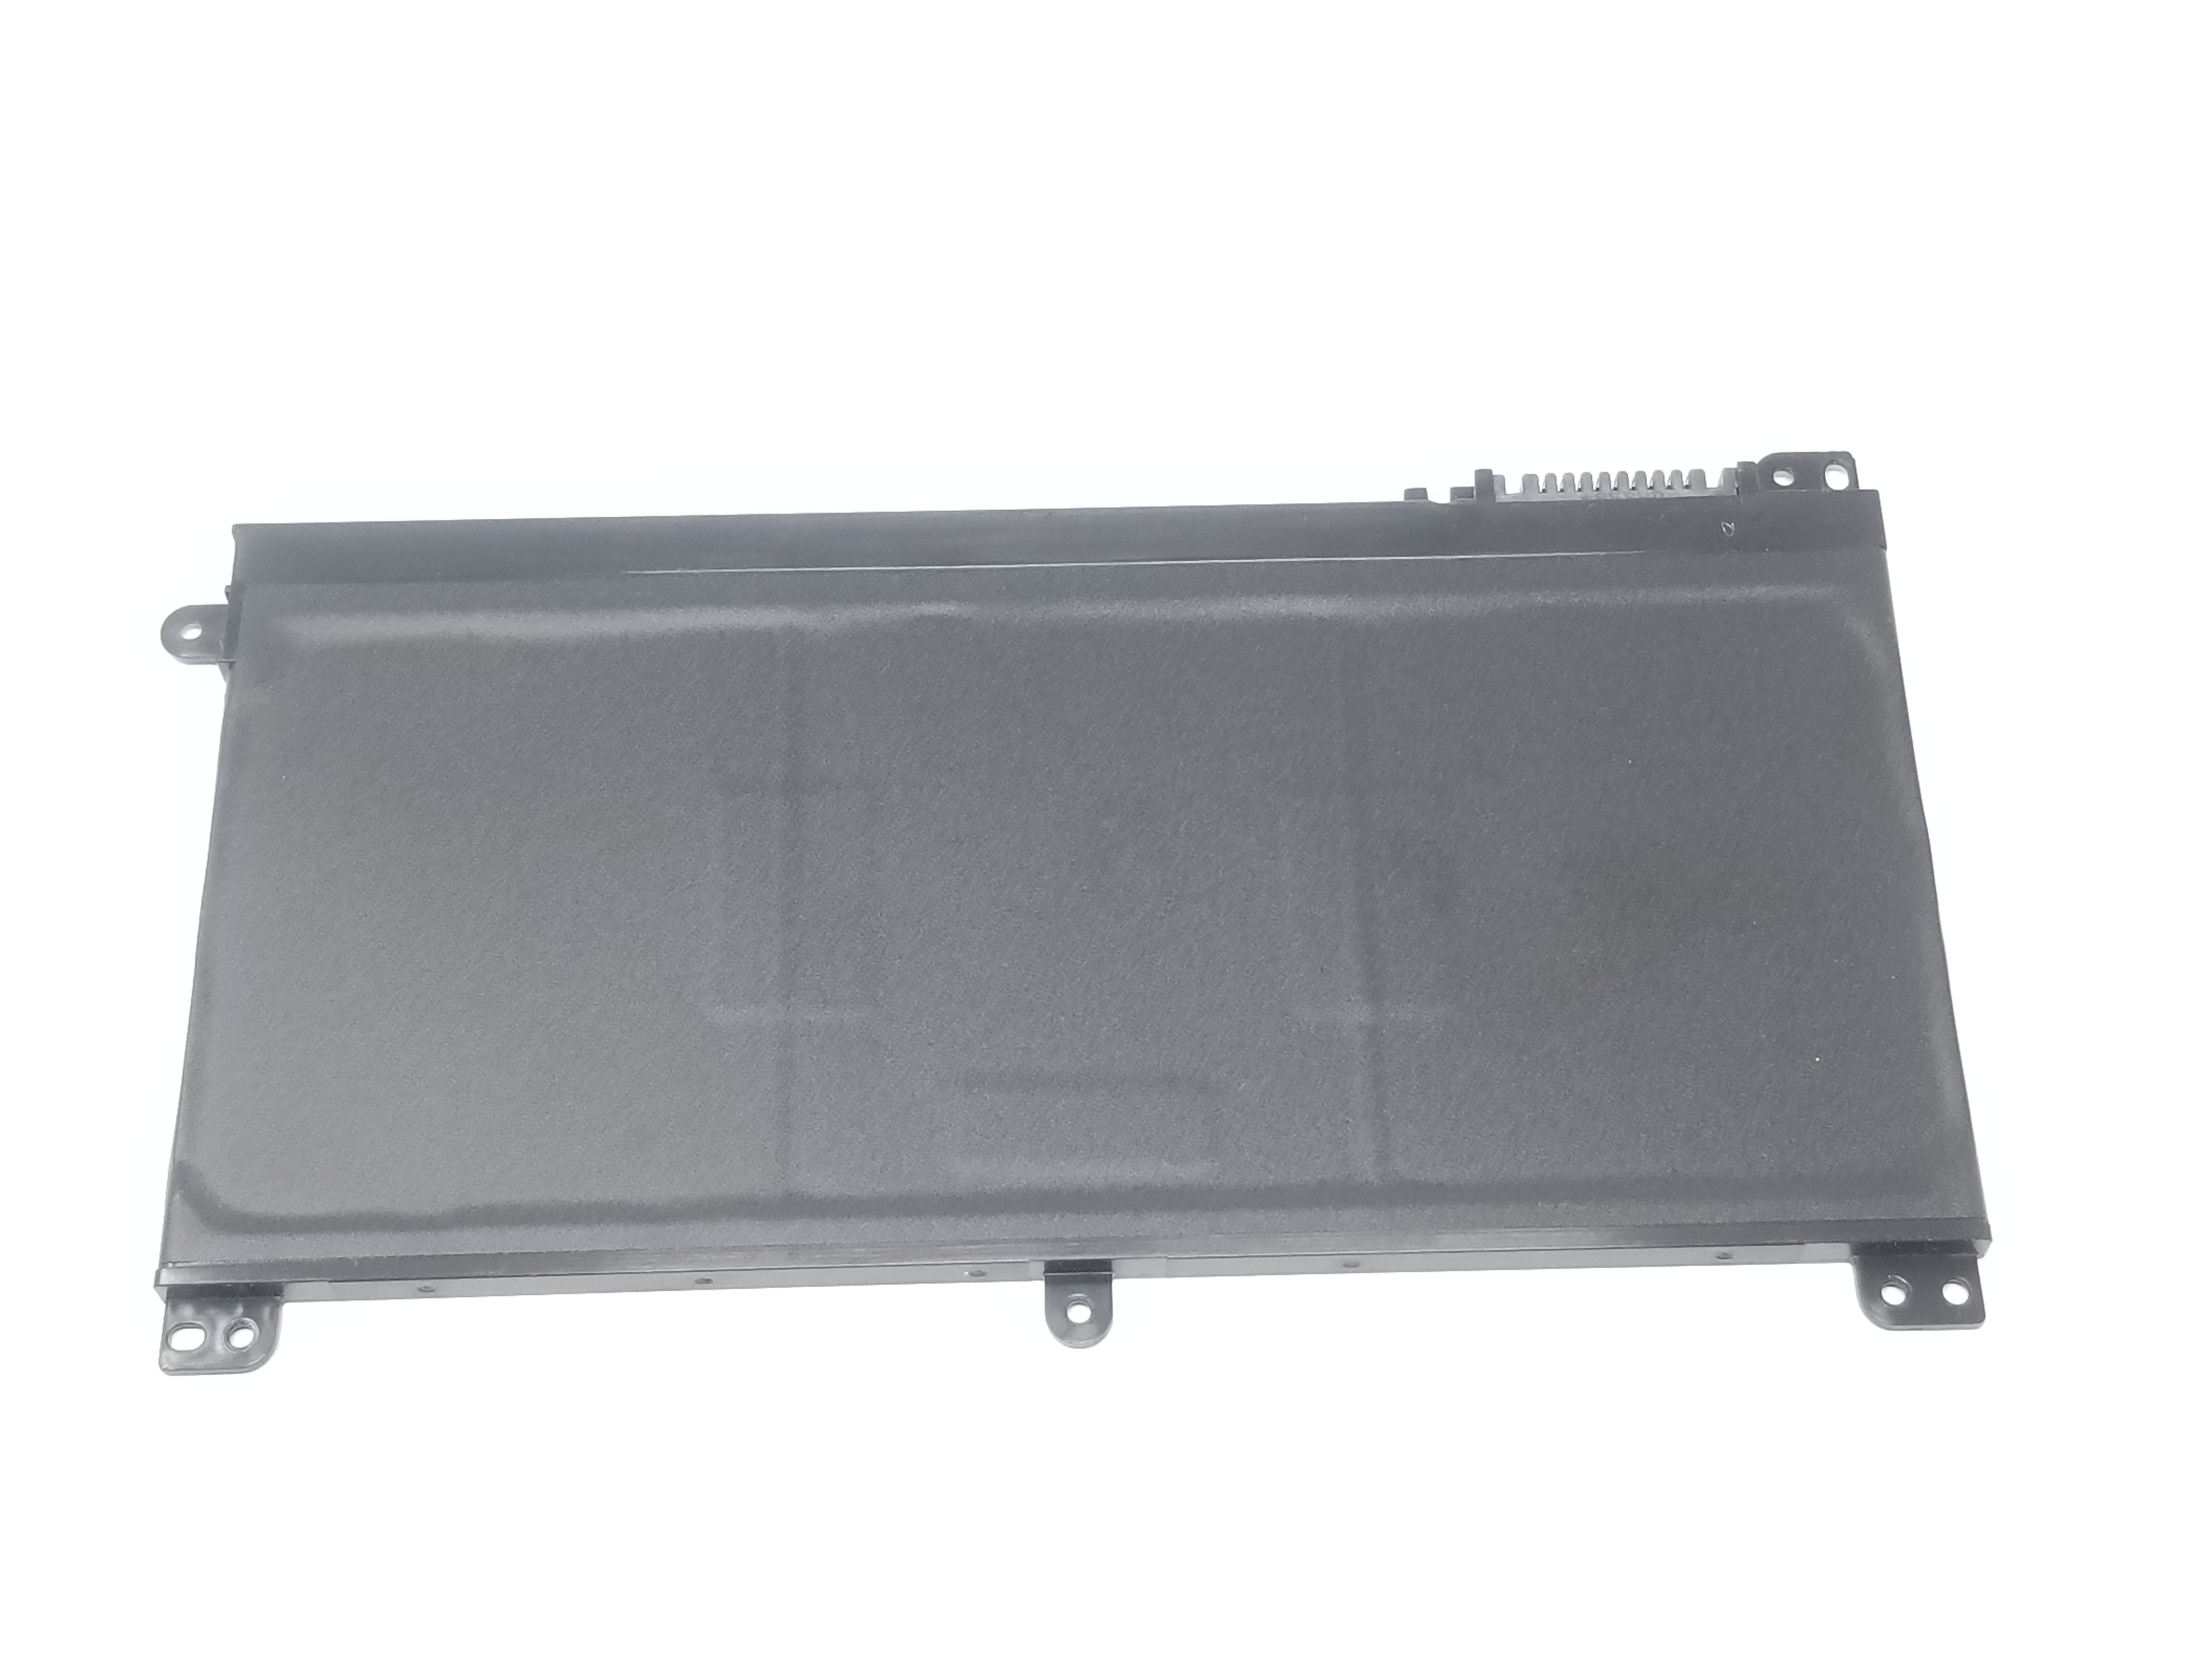 HP Stream 14 Pro G3 Battery 3Cell / 41Wh - 844203-855 / 843537-541